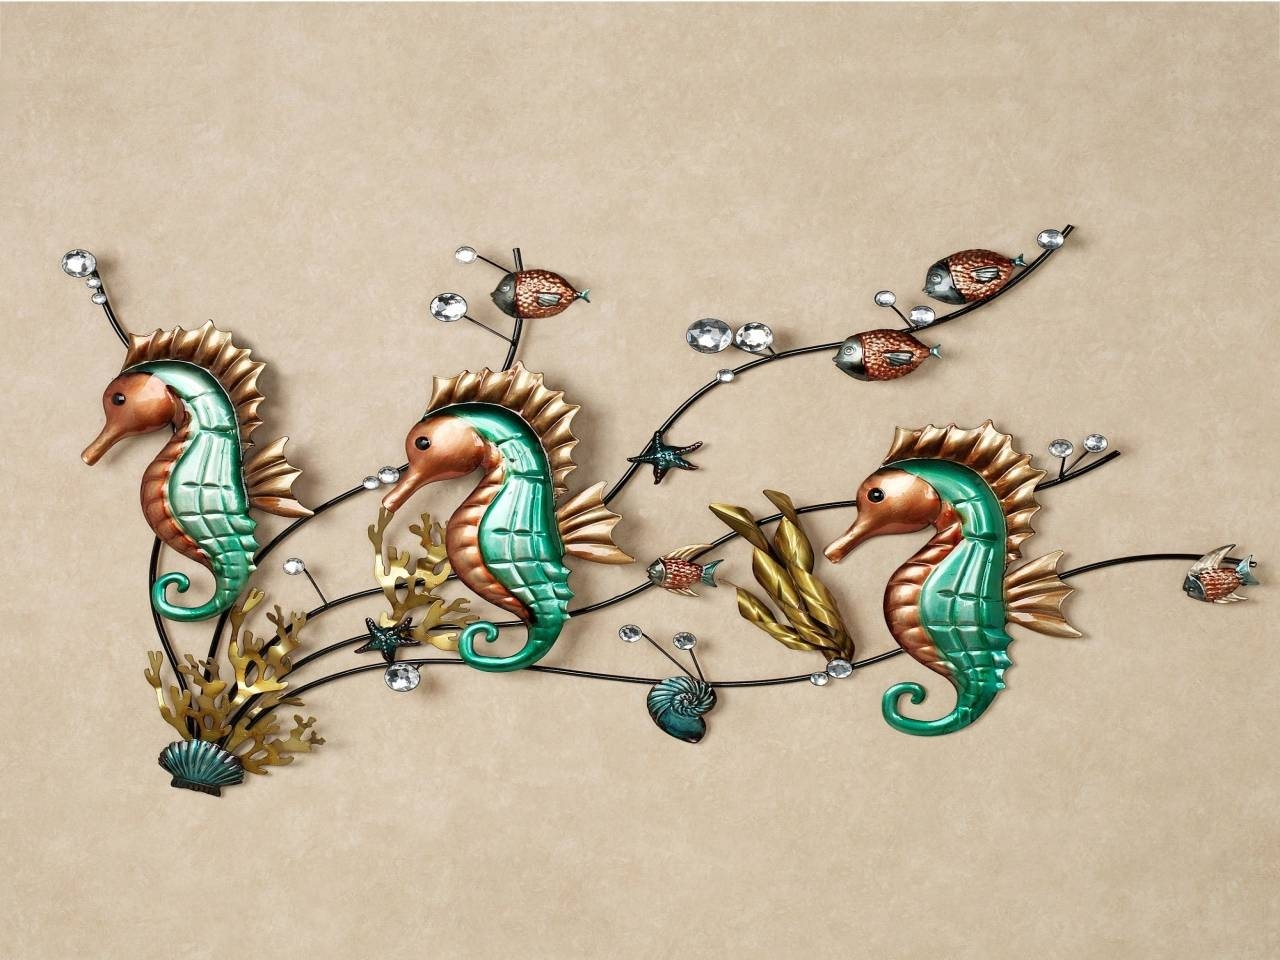 Functional Bedroom Furniture, Seahorse Metal Wall Plaques Accents In Most Current Seahorse Metal Wall Art (View 6 of 20)